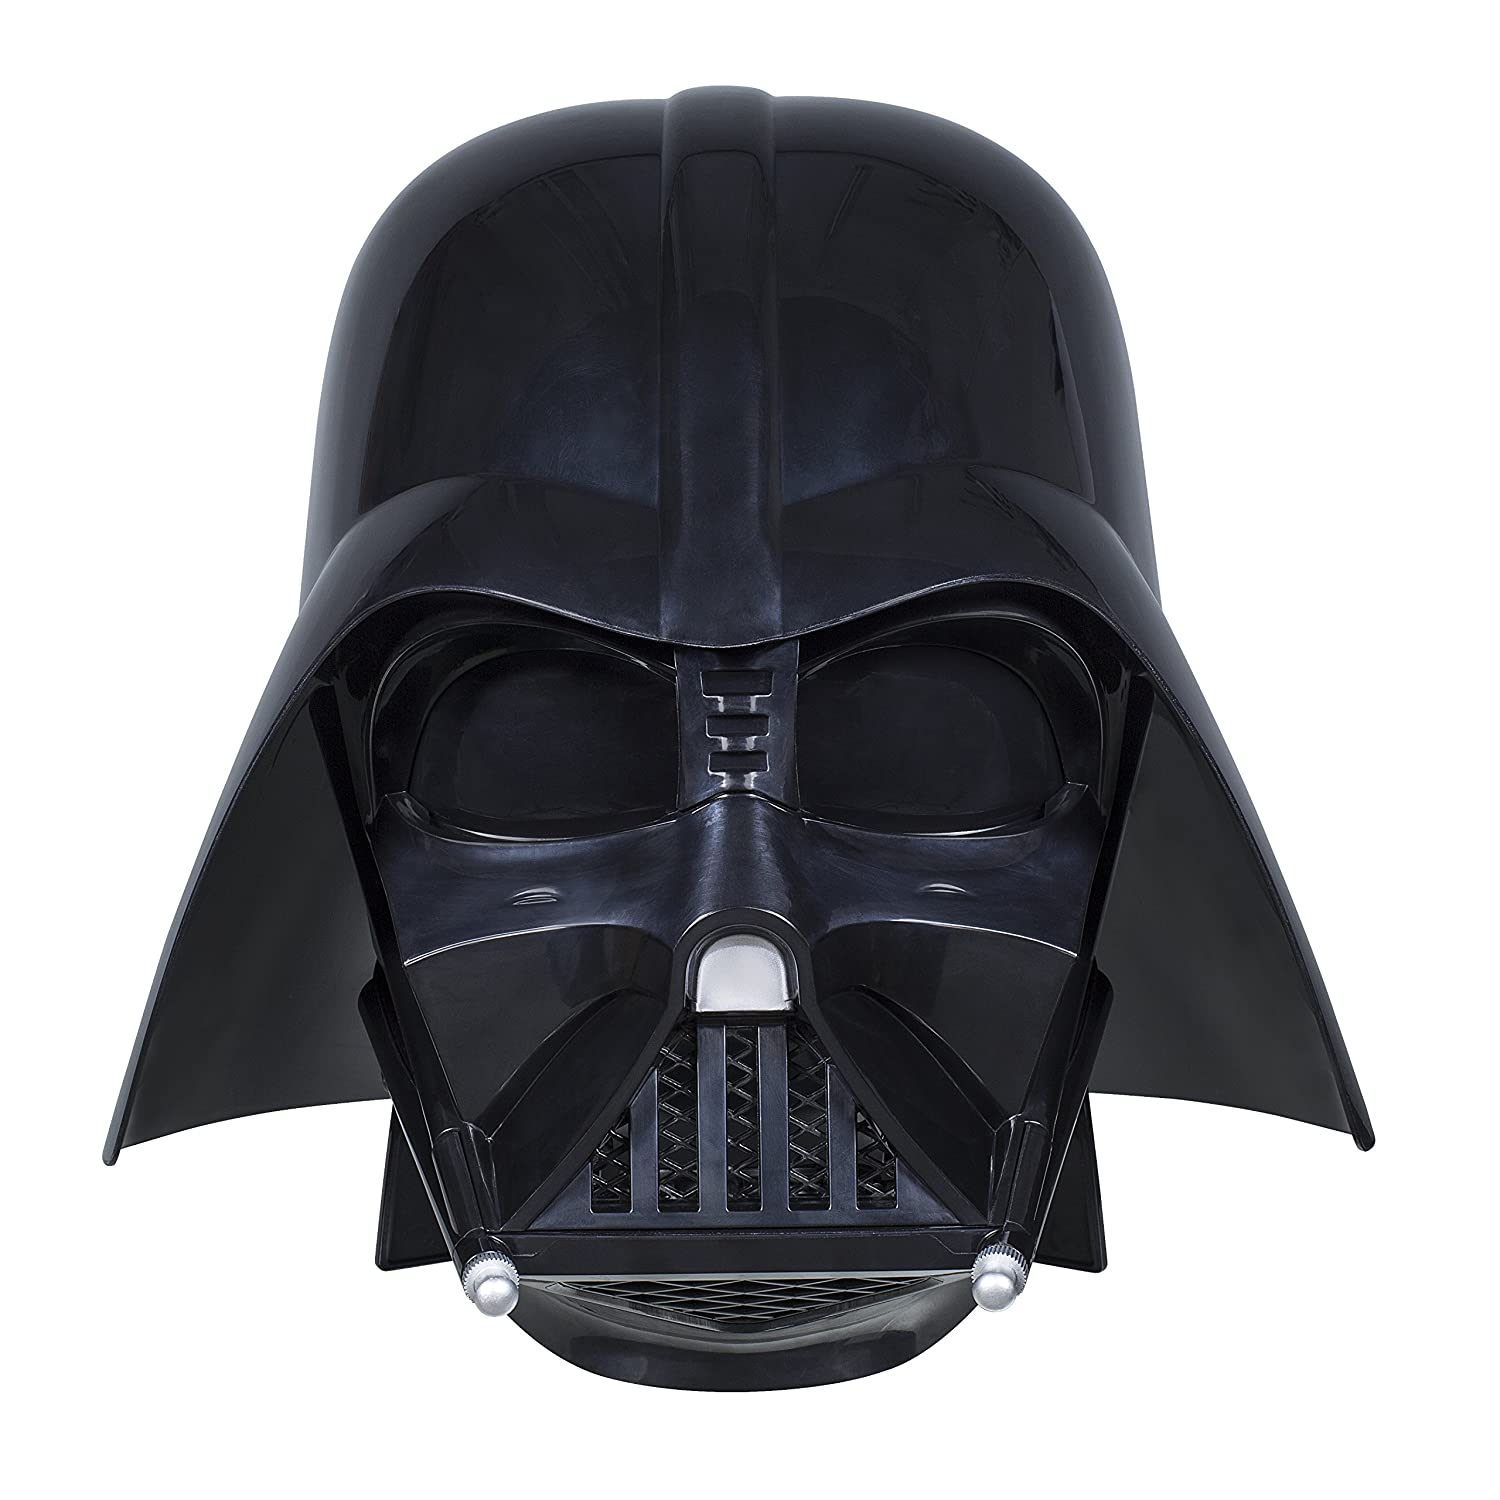 d846ed261e56ee Amazon.com: Star Wars The Black Series Darth Vader Premium Electronic  Helmet (Amazon Exclusive): Toys & Games